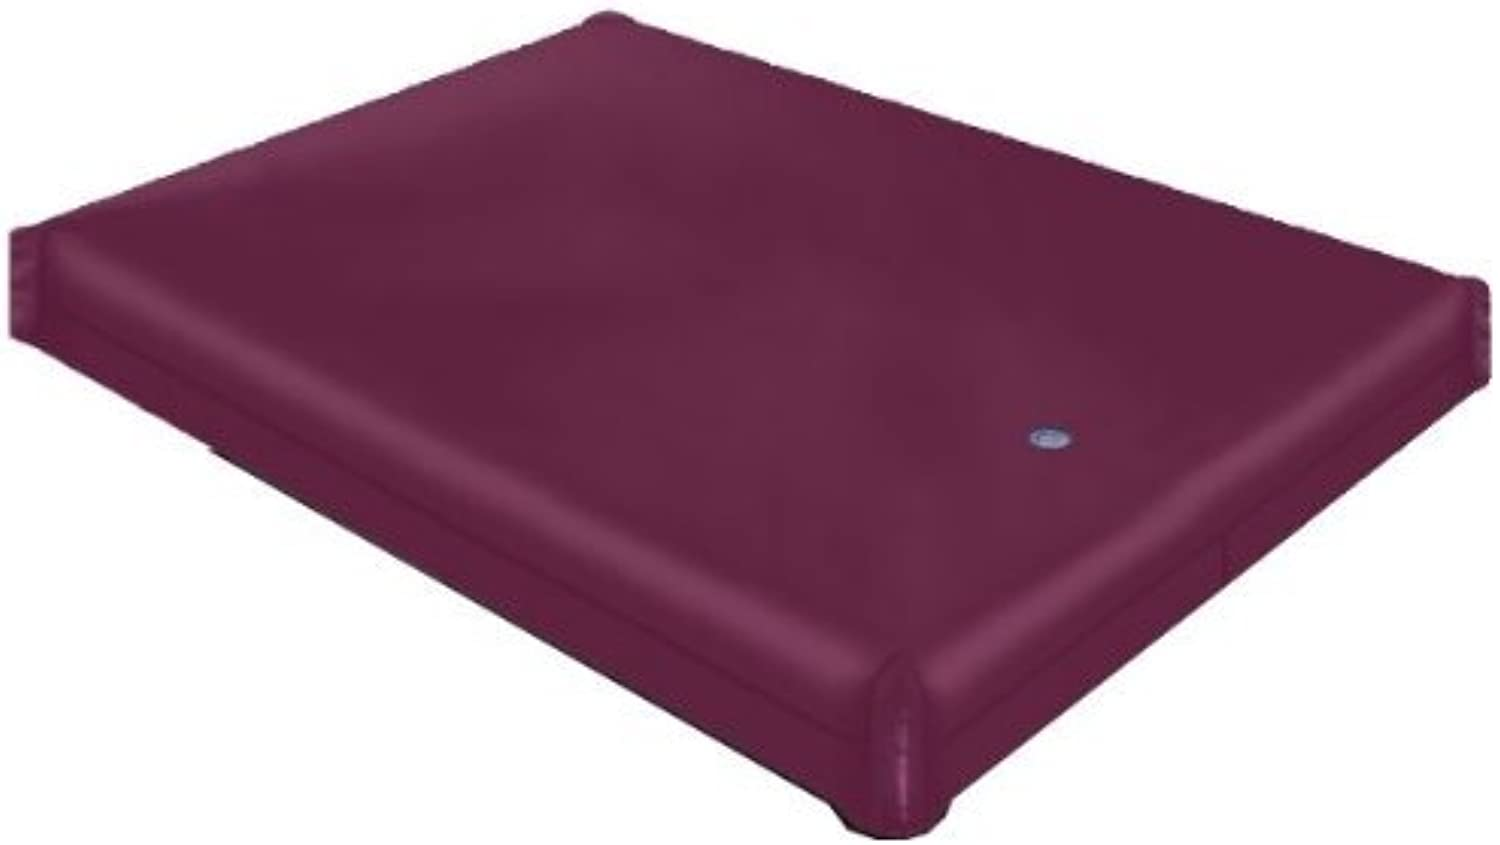 Free Flow Full Motion Hardside Waterbed Mattress By Innomax Cal King (72x84)